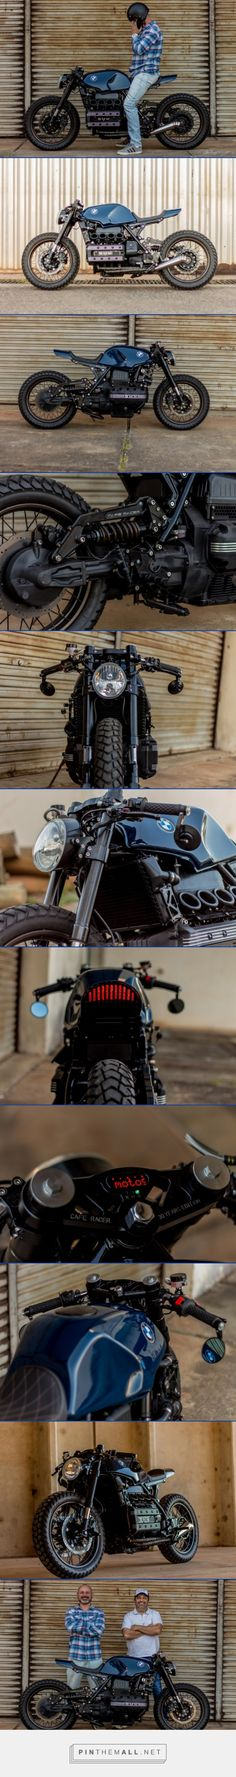 BMW K100 Cafe Racer by Retrorides | BikeBrewers.com - created via https://pinthemall.net